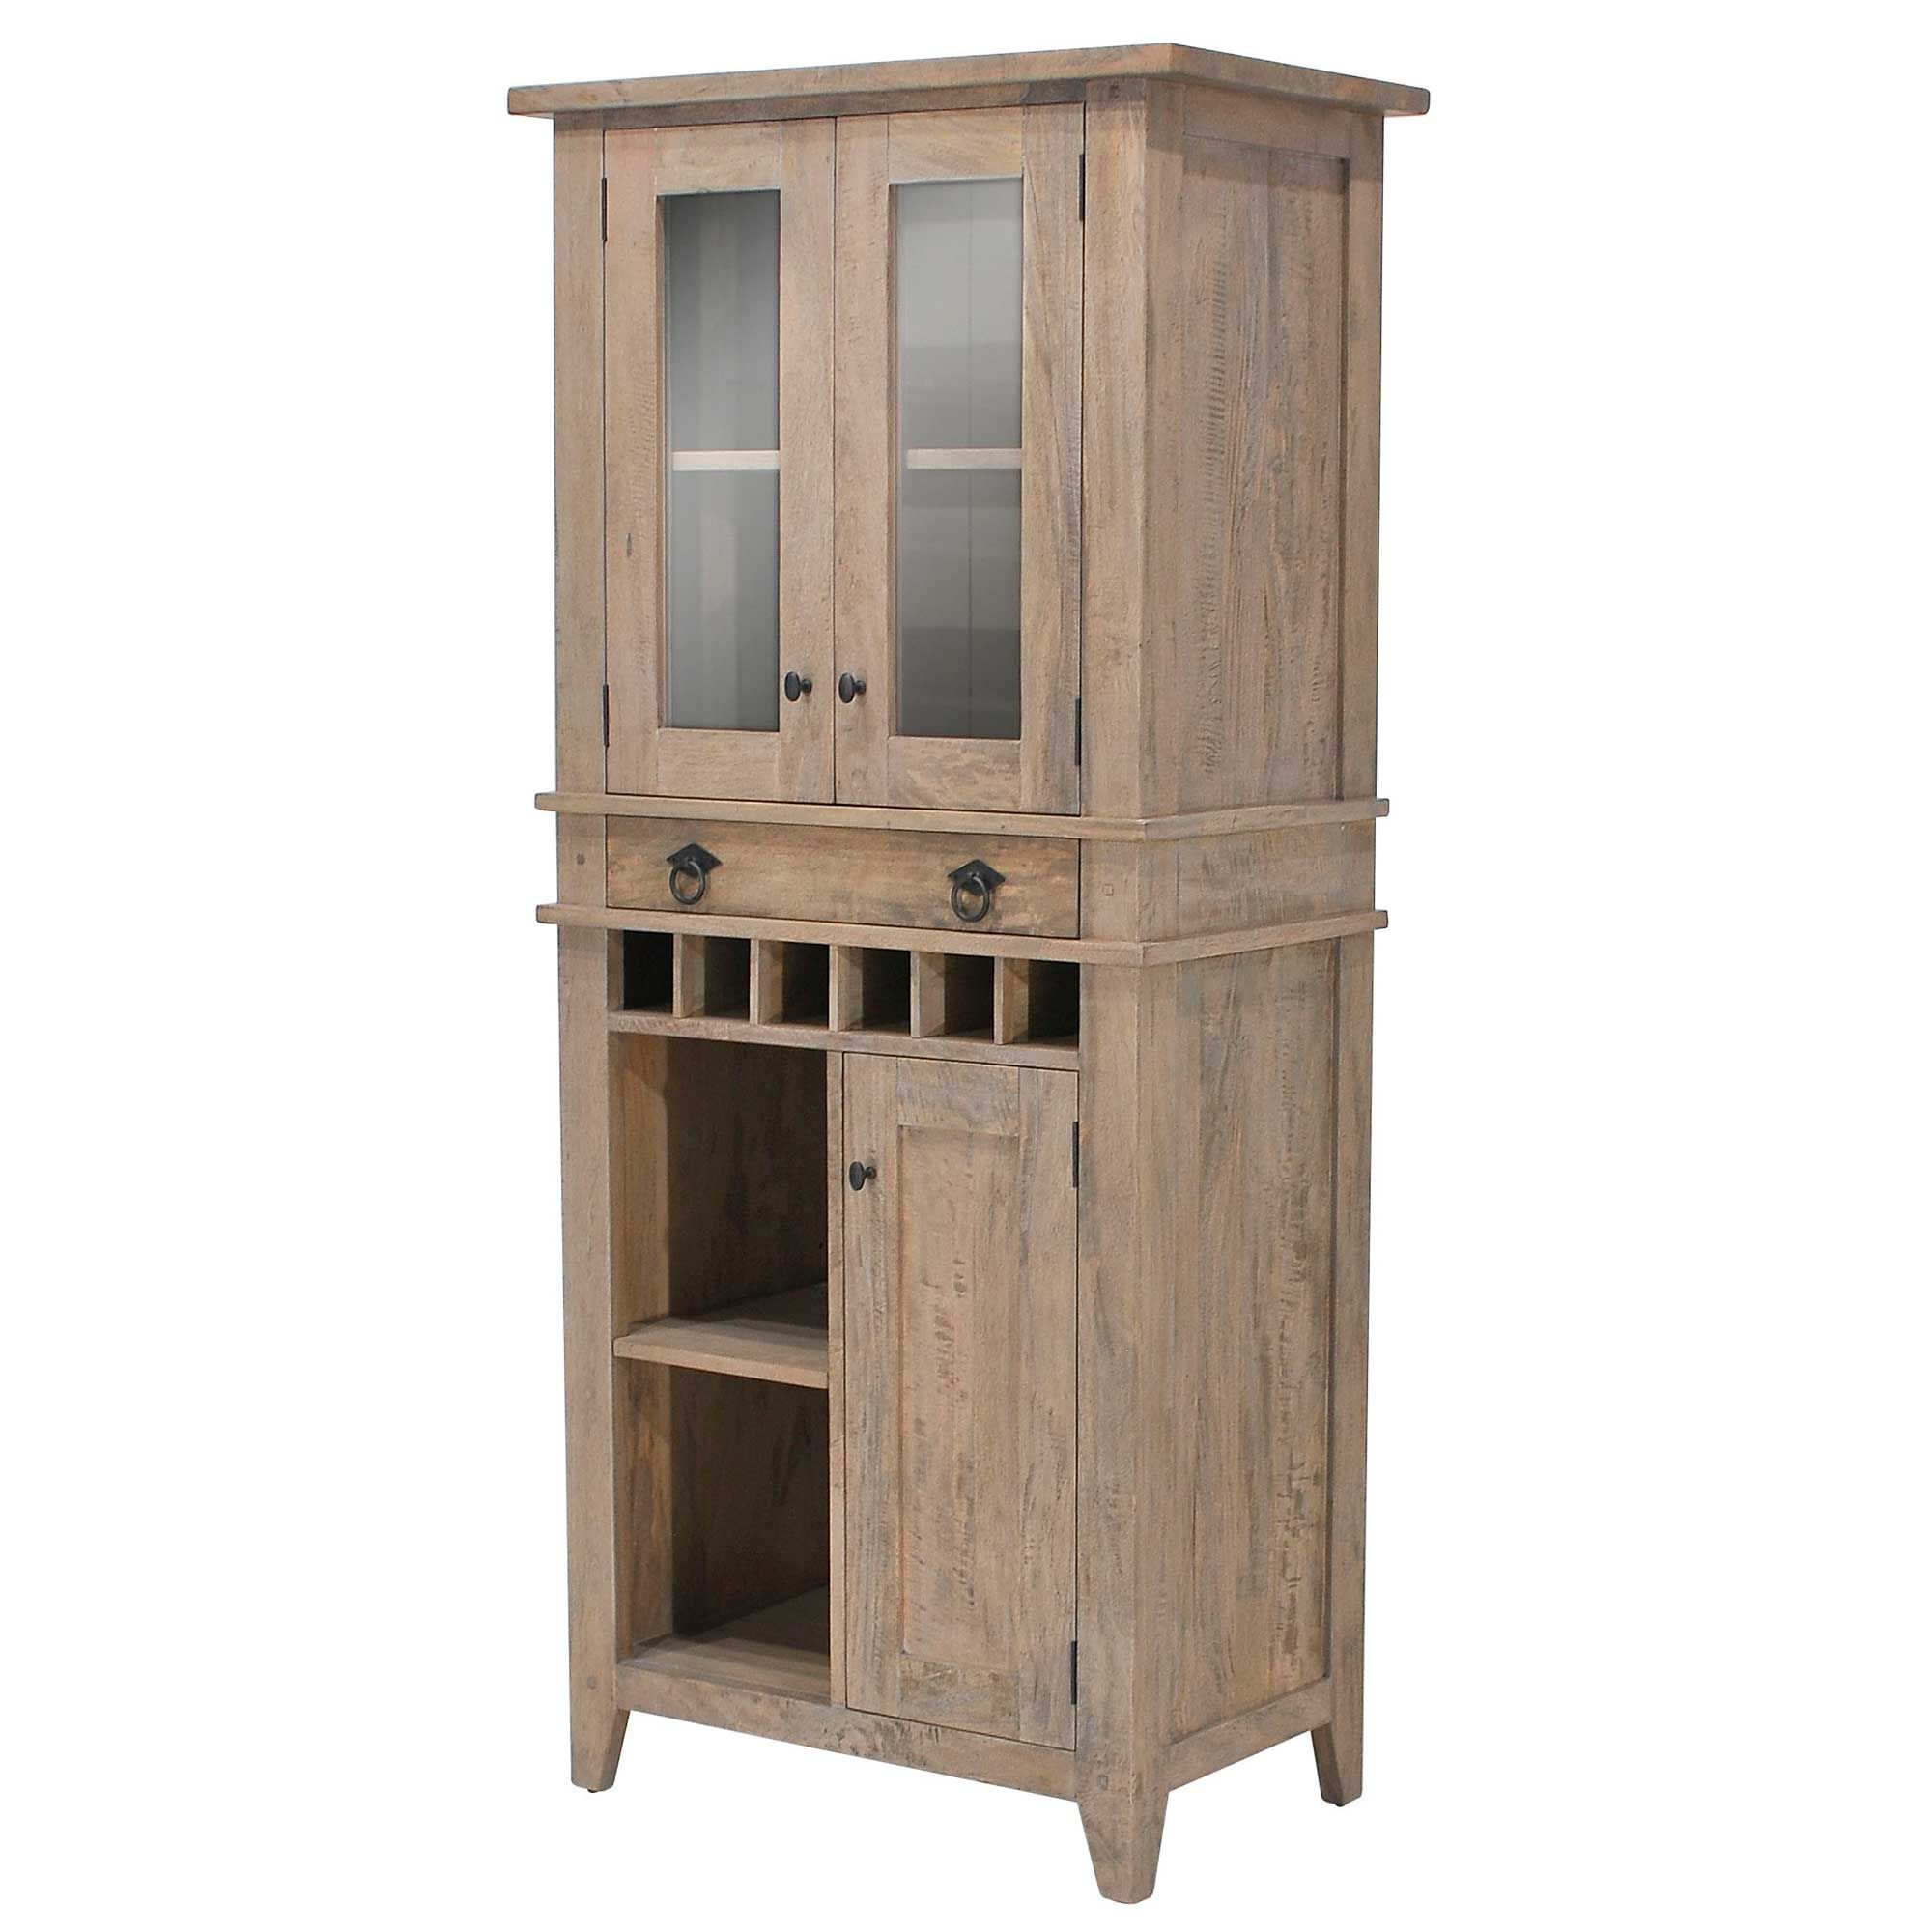 The Stunning Ruskin Kitchen Display Cabinet Is Attractive And .